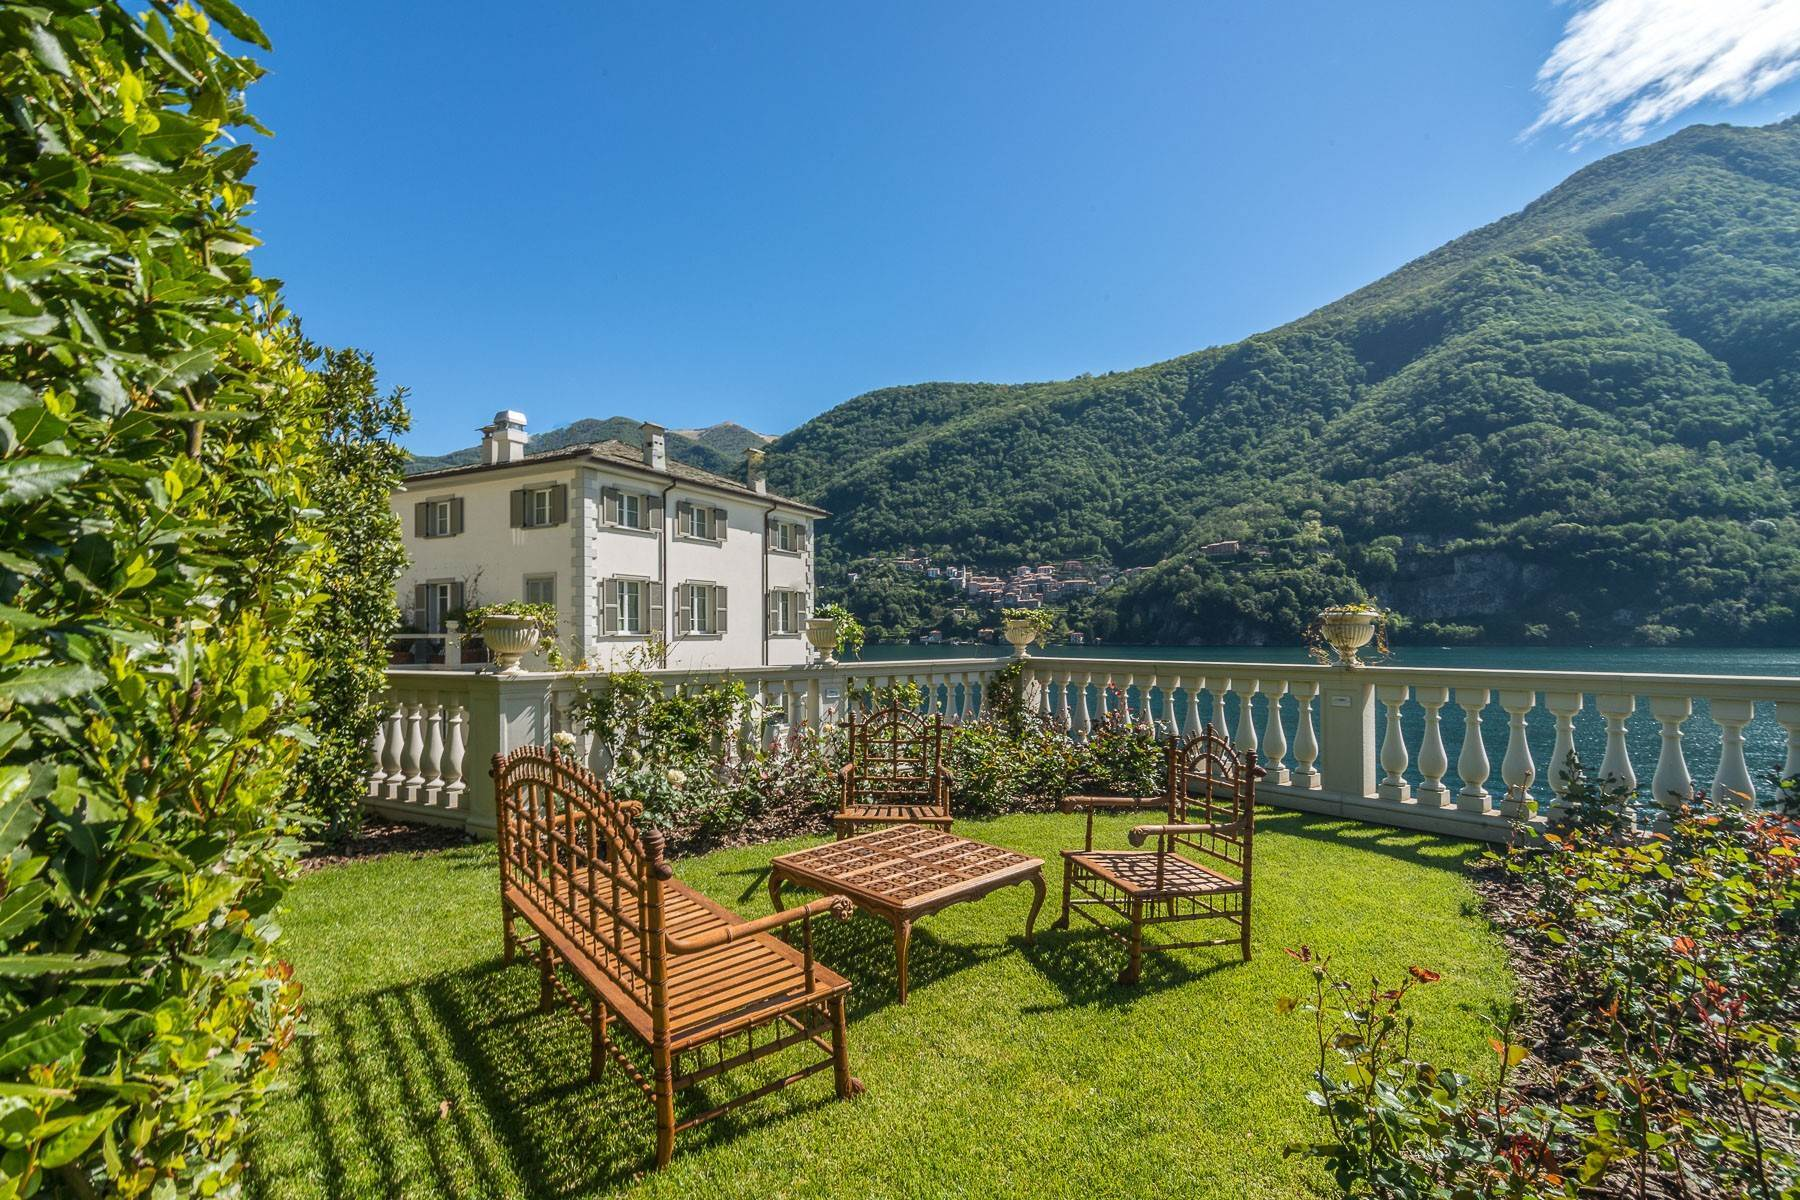 20. Other Residential Homes at Laglio, Como, Italy